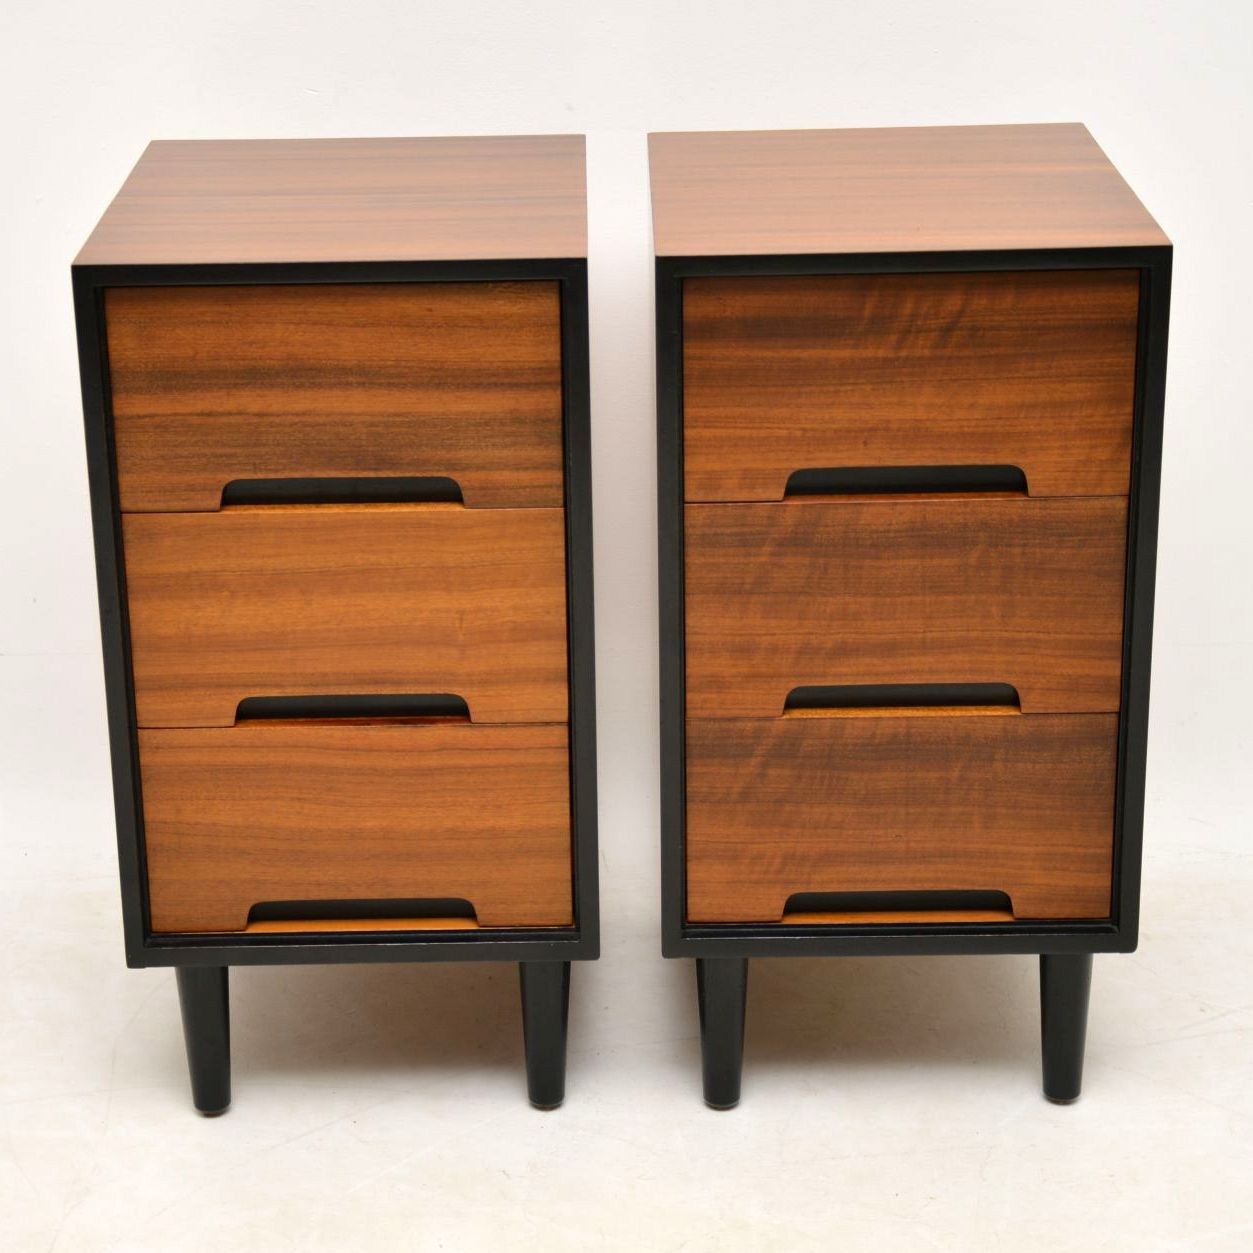 pair_of_walnut_bedside_chests_john_sylvia_reid_stag_4